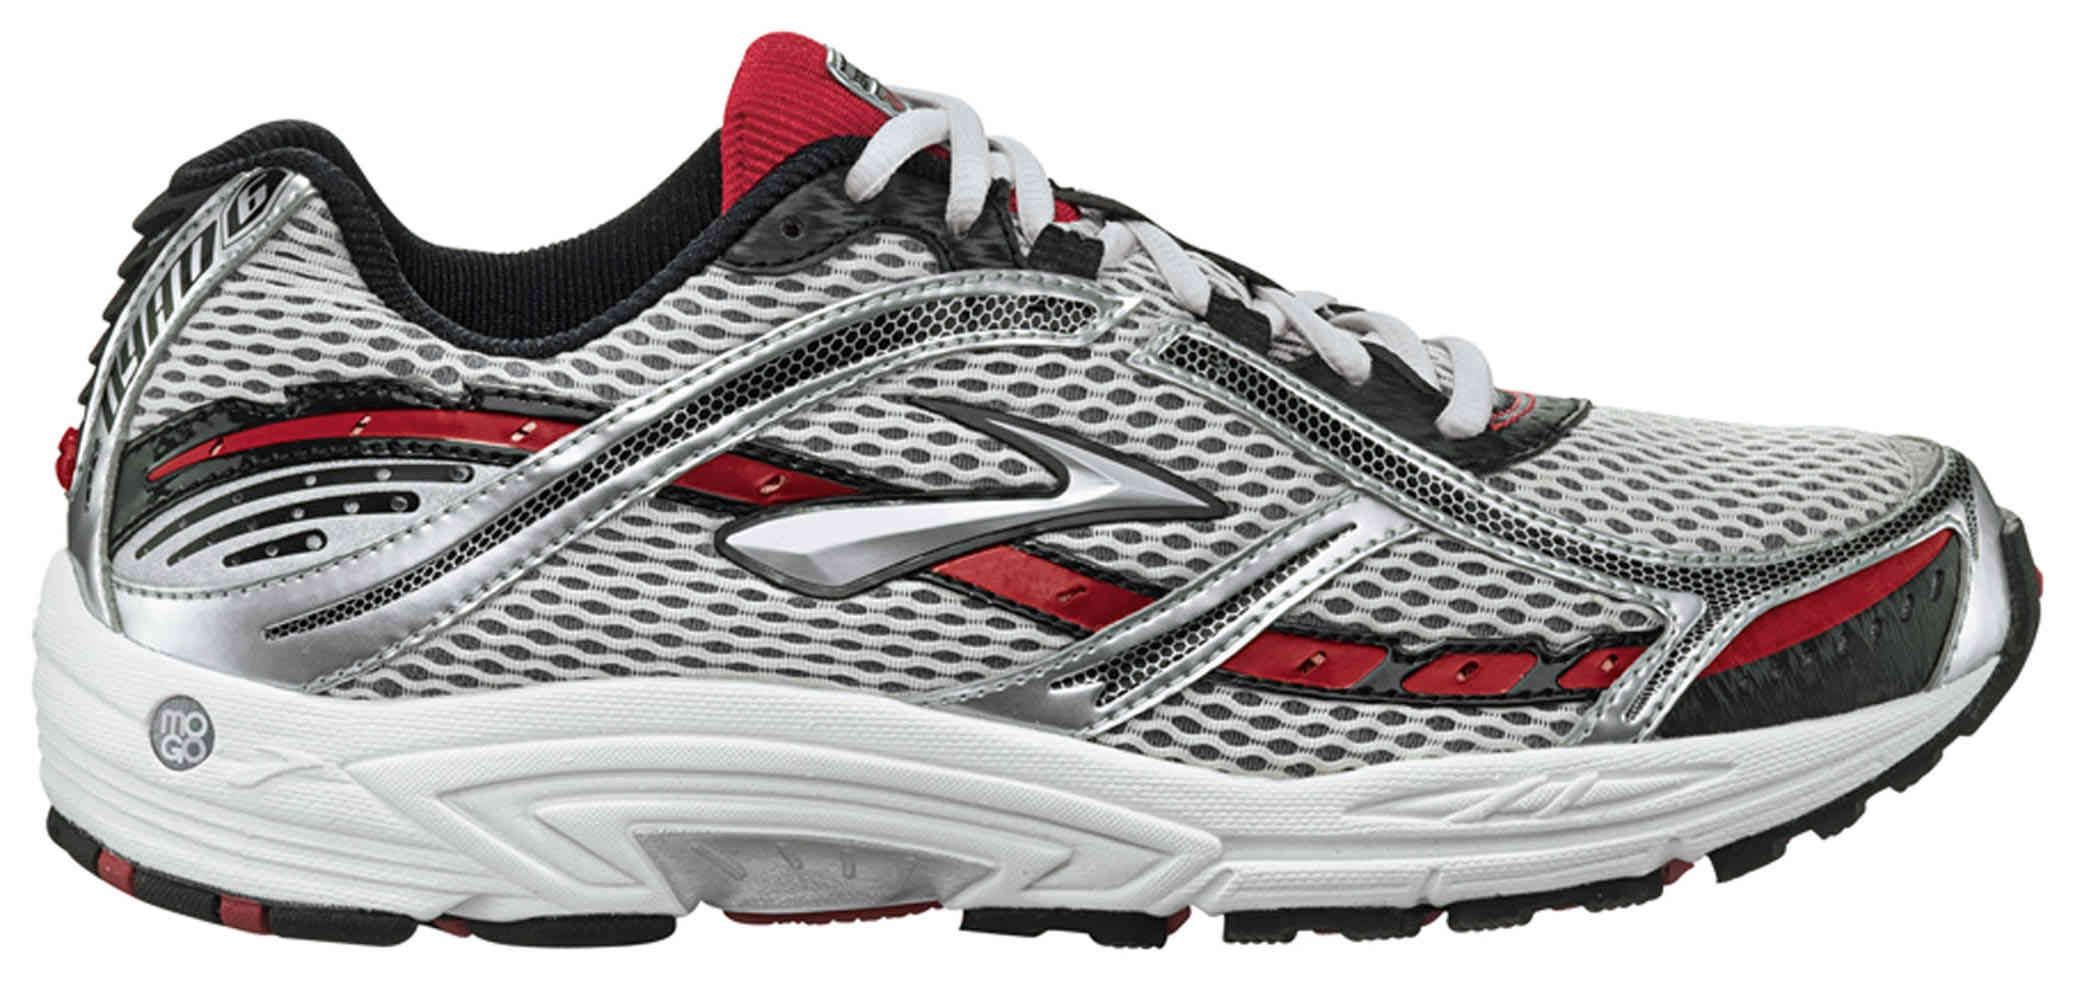 Dyad Shoe Feet Men's For Brooks Arches Running 6 Flat Low sQChrtd